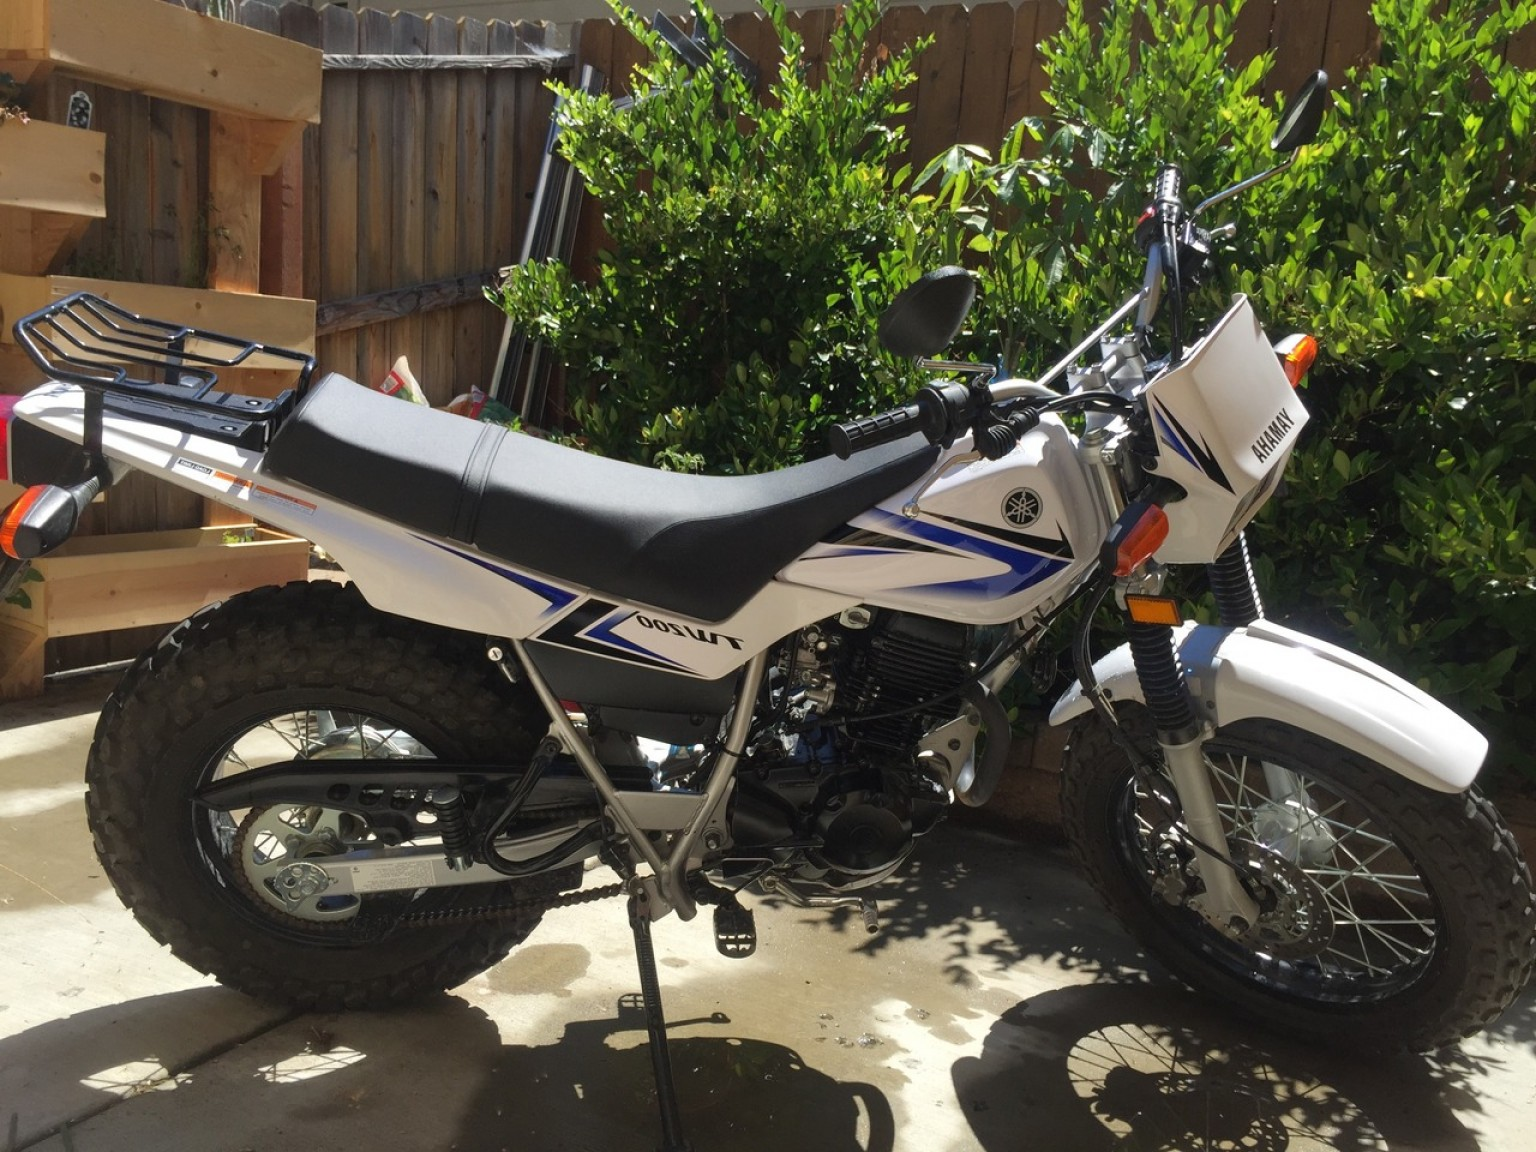 2012 Yamaha Vector Specs: Used Motorcycles For Sale Price Tags